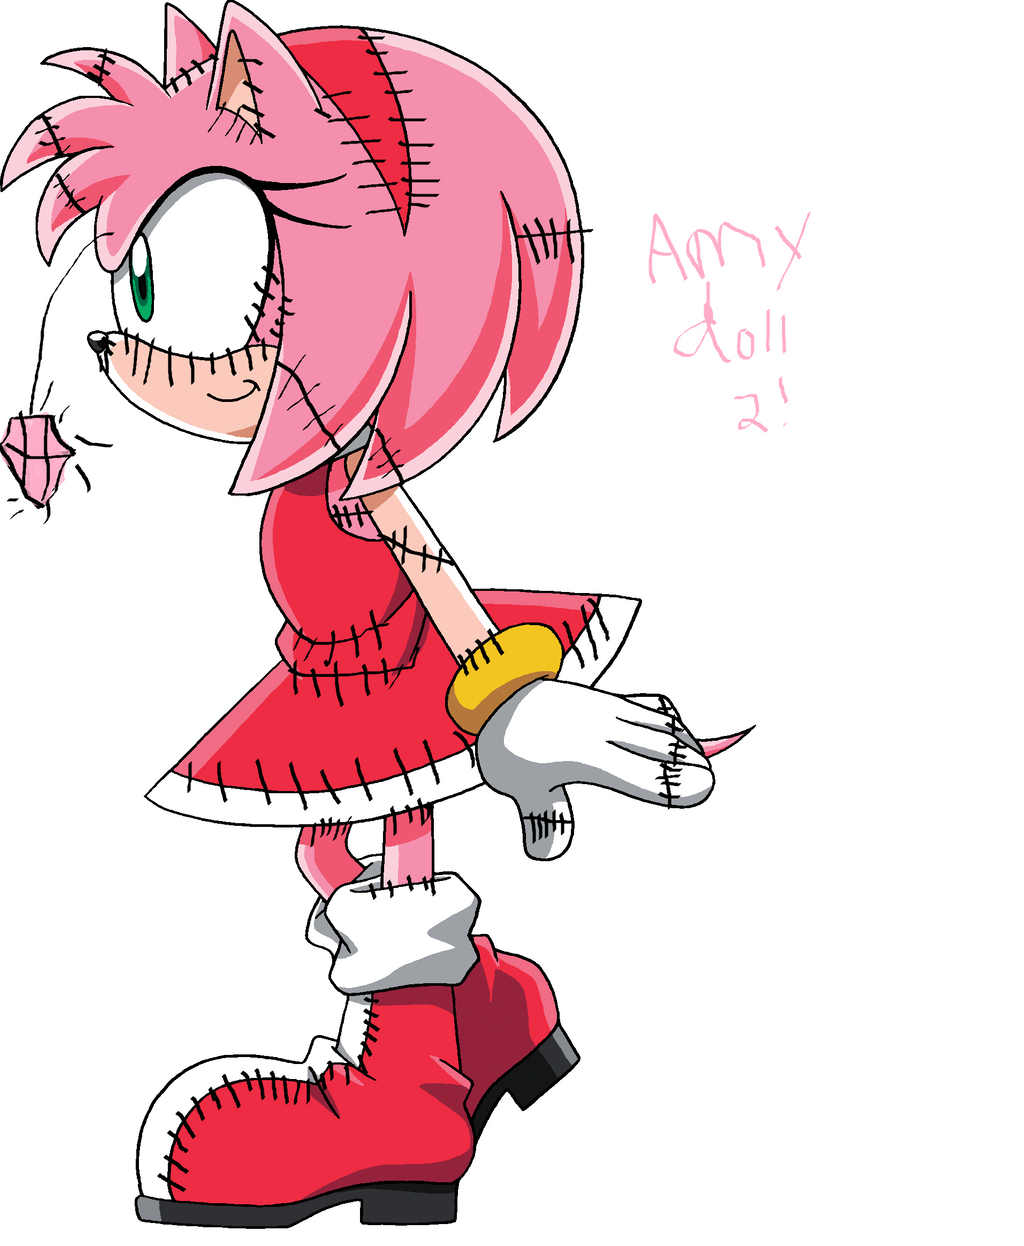 Amy Doll 2 by creeperexplosion11